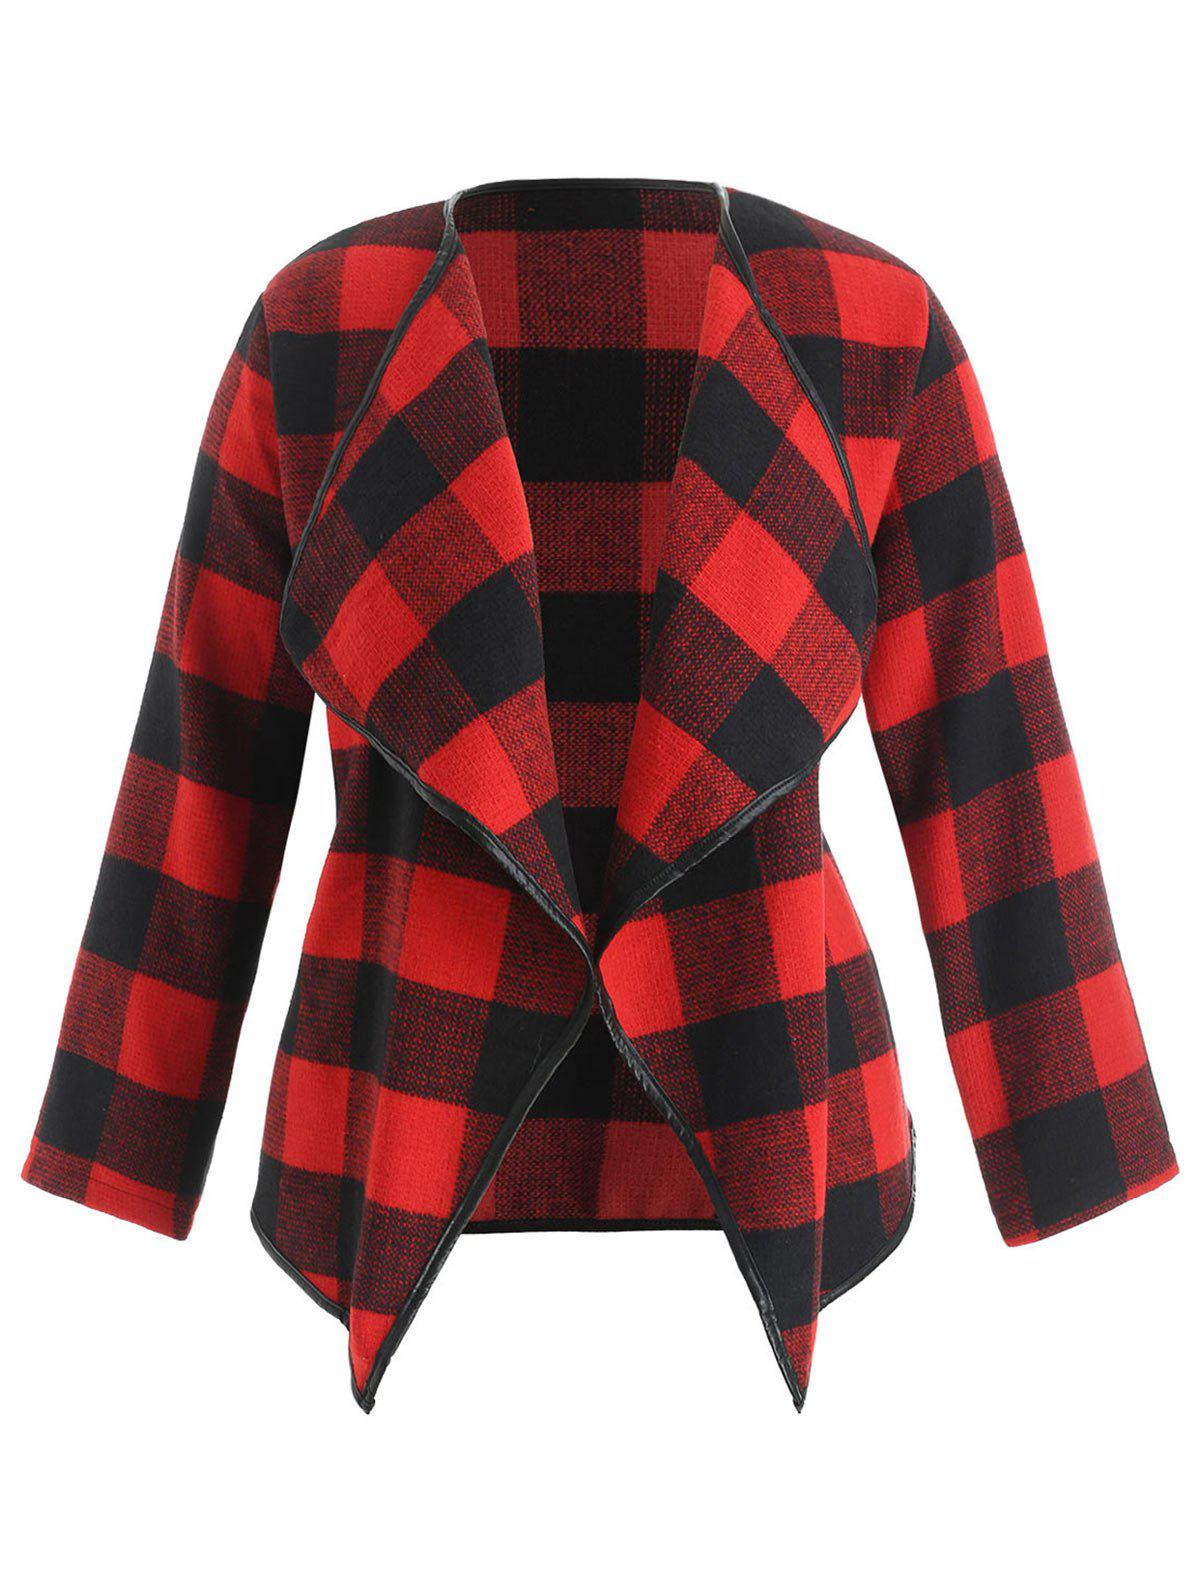 031e023dfff 2019 Plus Size Faux Leather Trim Tartan Jacket